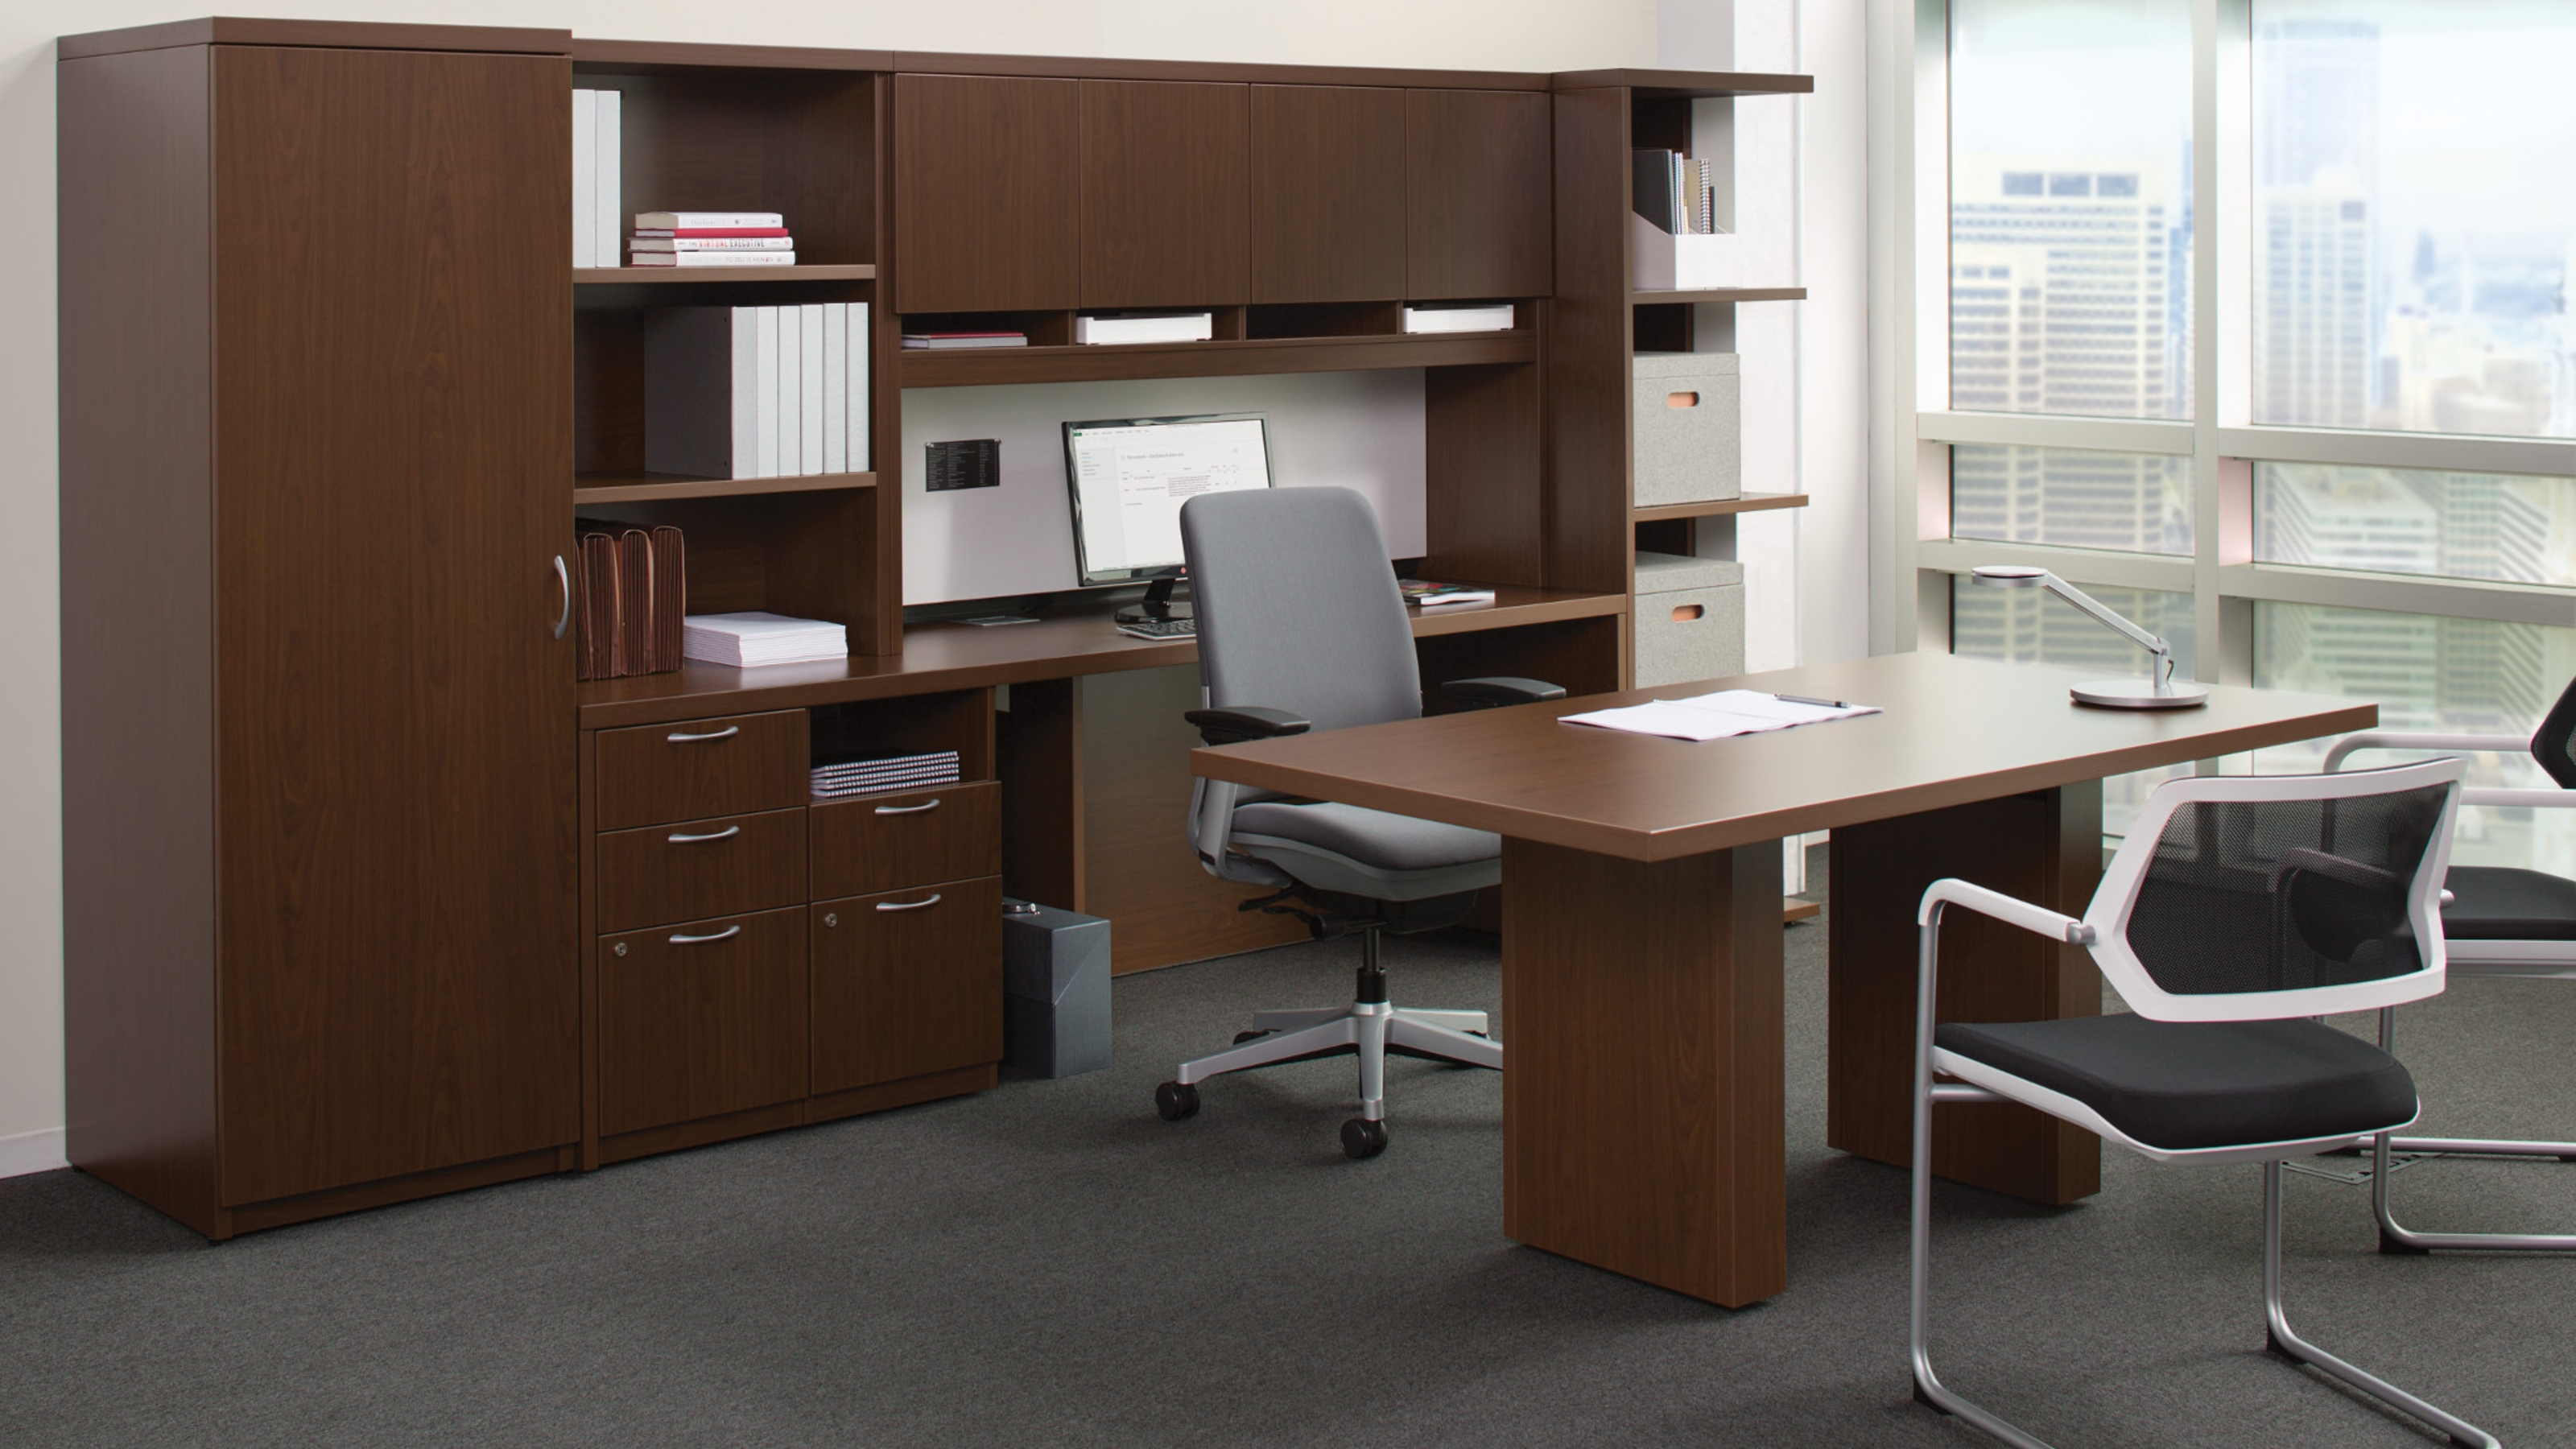 collection stationary storage news with the designer adaptable desk formwork versatile